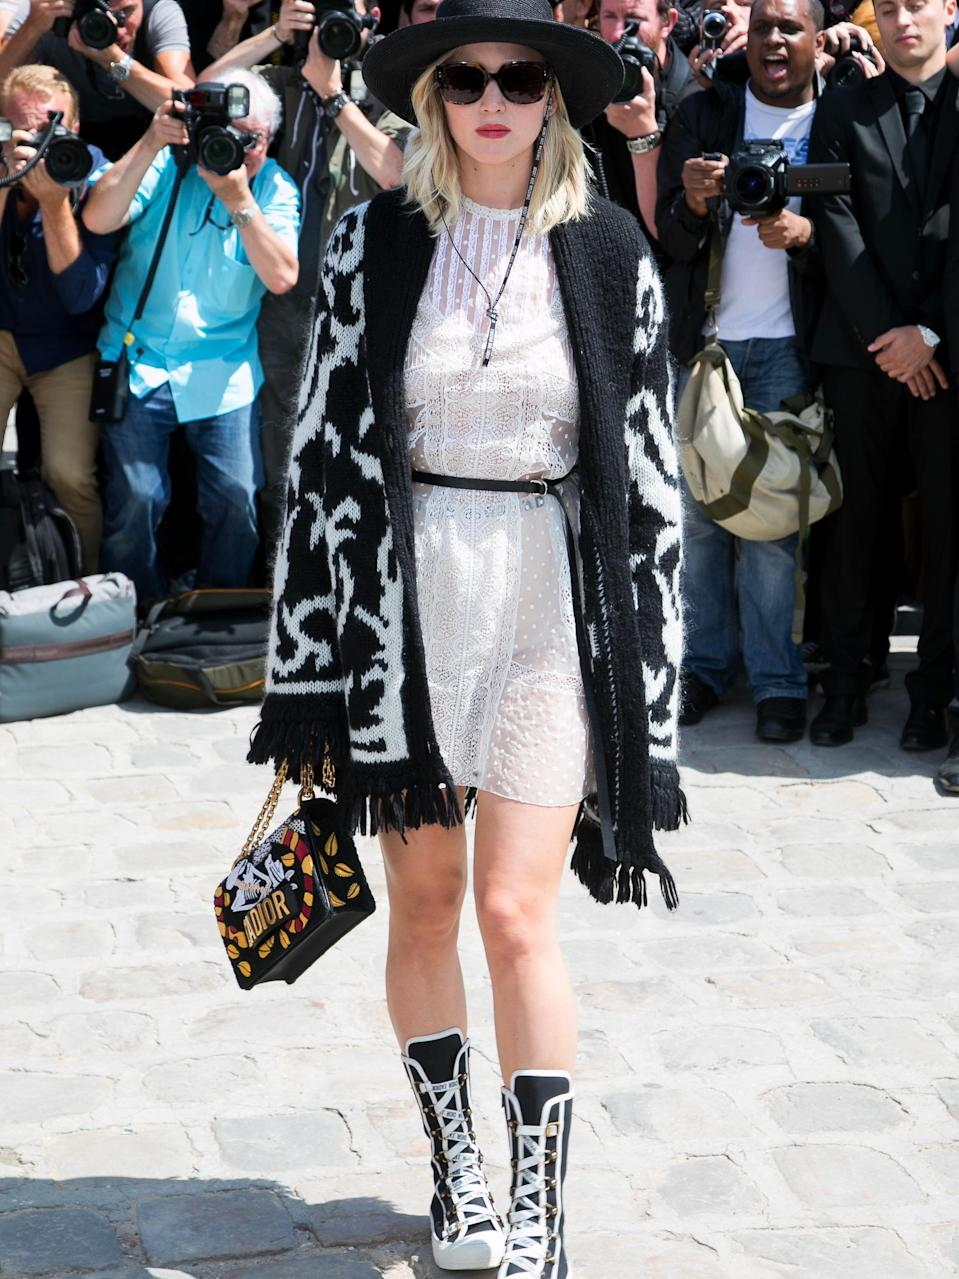 Ever the fashionista, she later changed into this outfit for their Haute Couture Fall/Winter show.